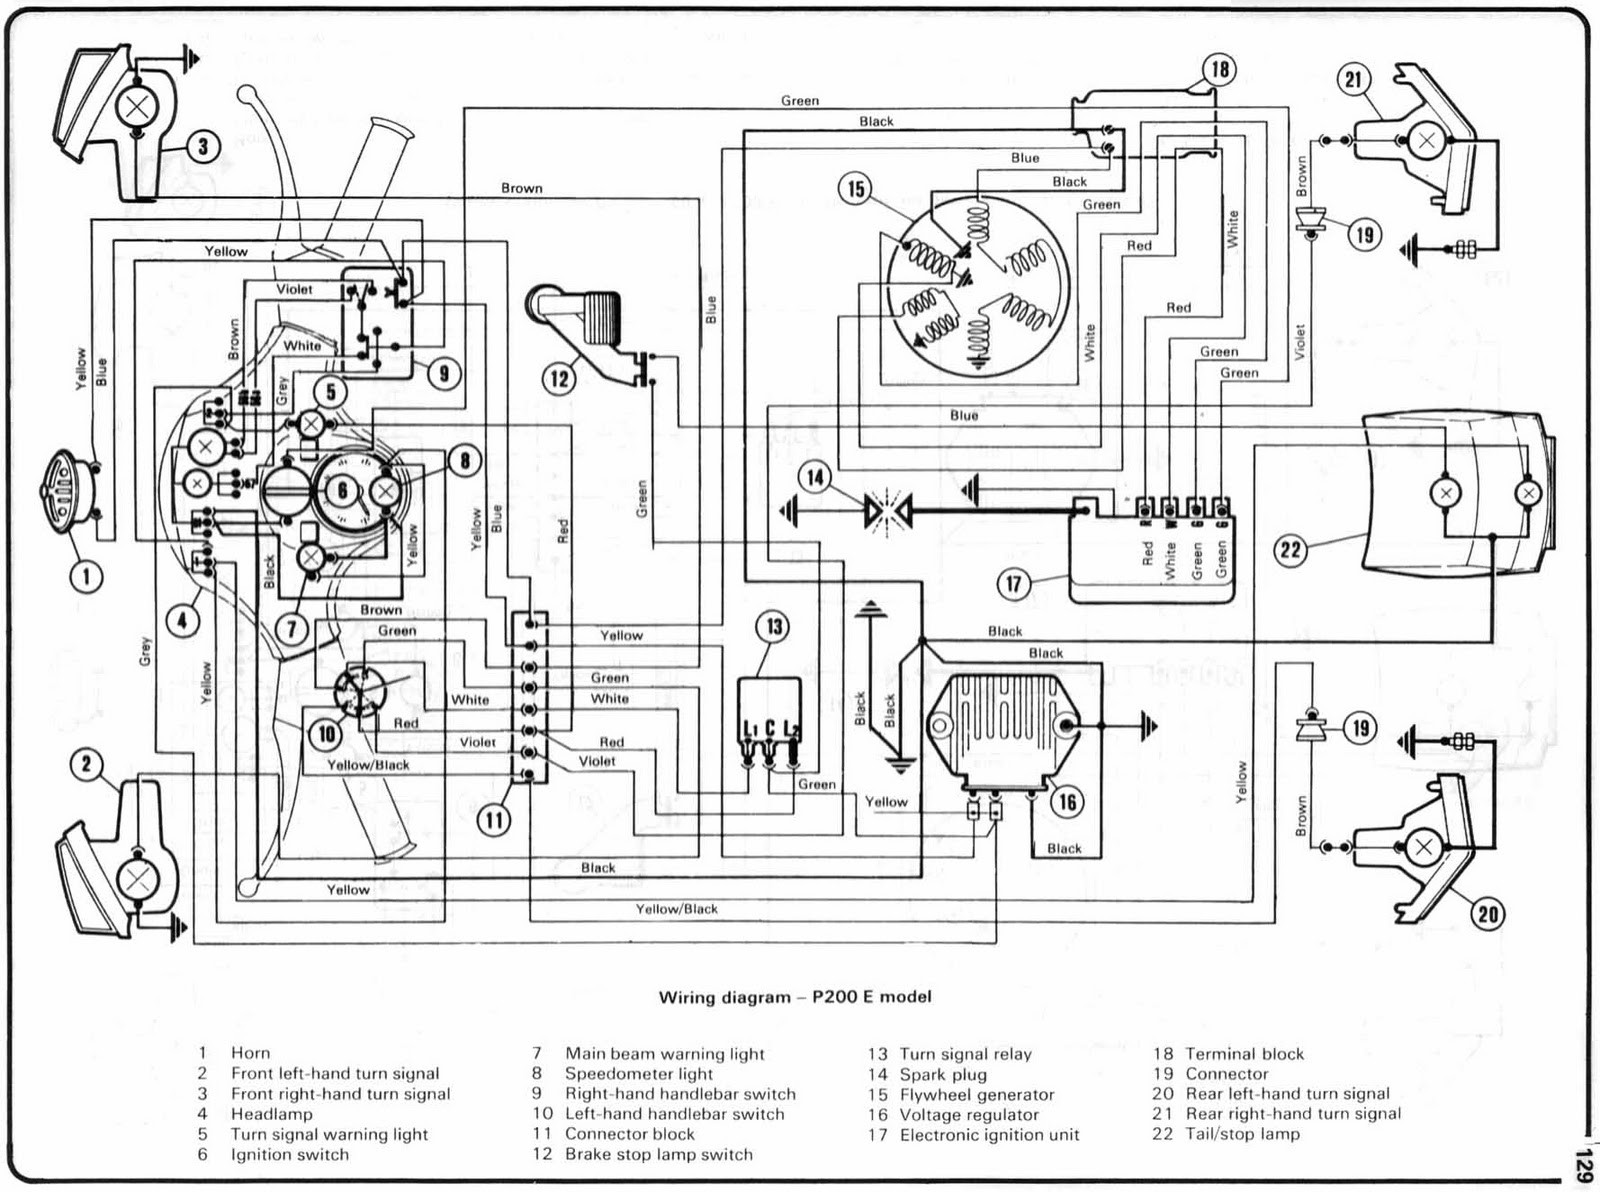 wiring diagram for 2004 mercury monterey  wiring  free